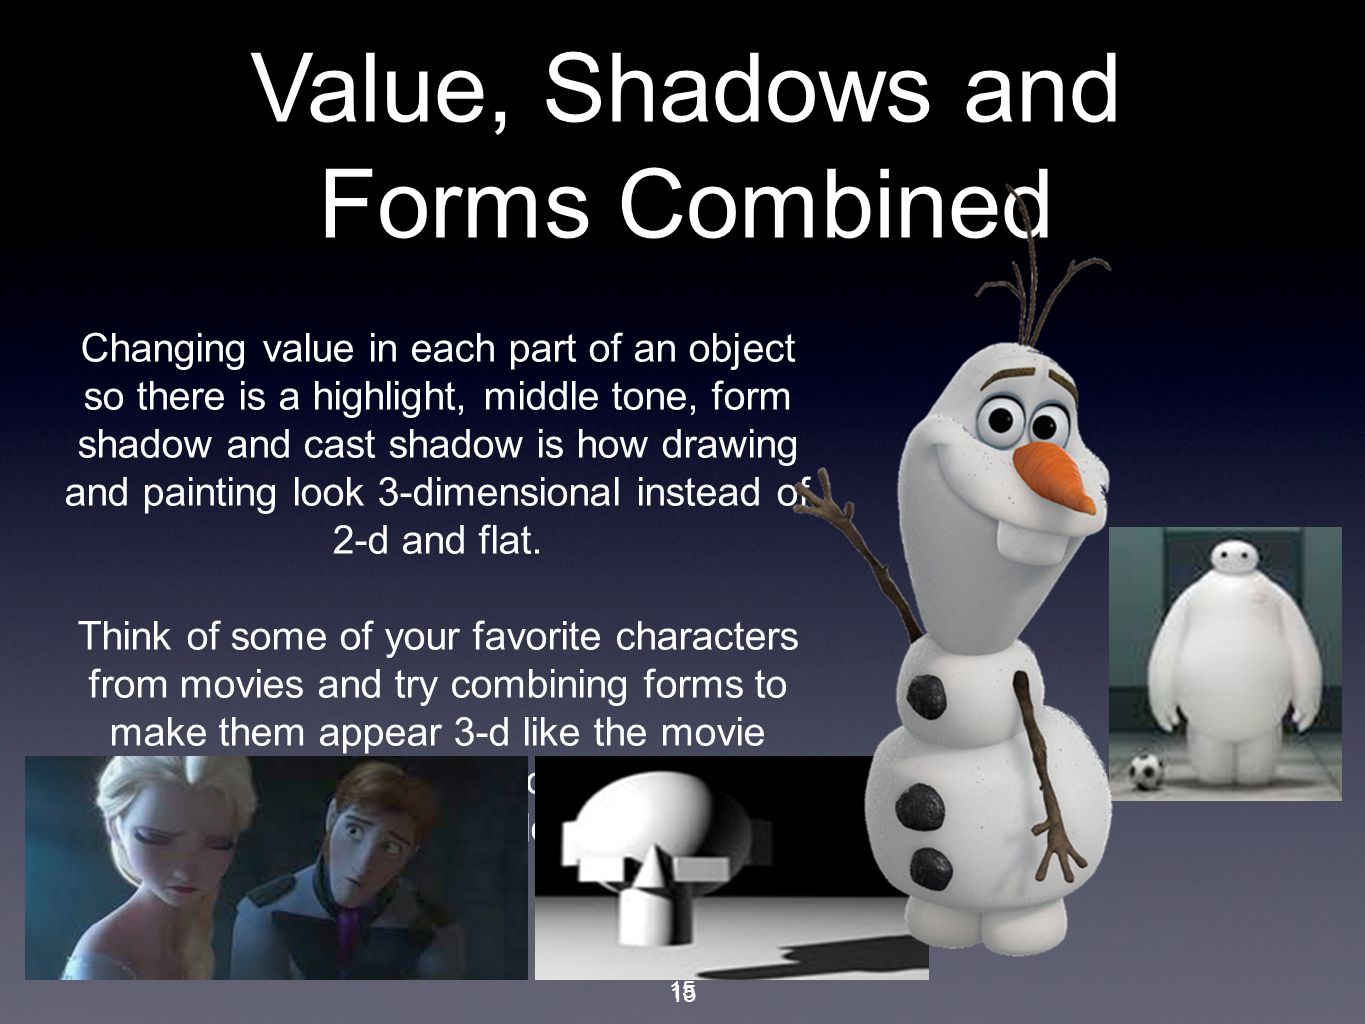 15 Changing value in each part of an object so there is a highlight, middle tone, form shadow and cast shadow is how drawing and painting look 3-dimensional instead of 2-d and flat.